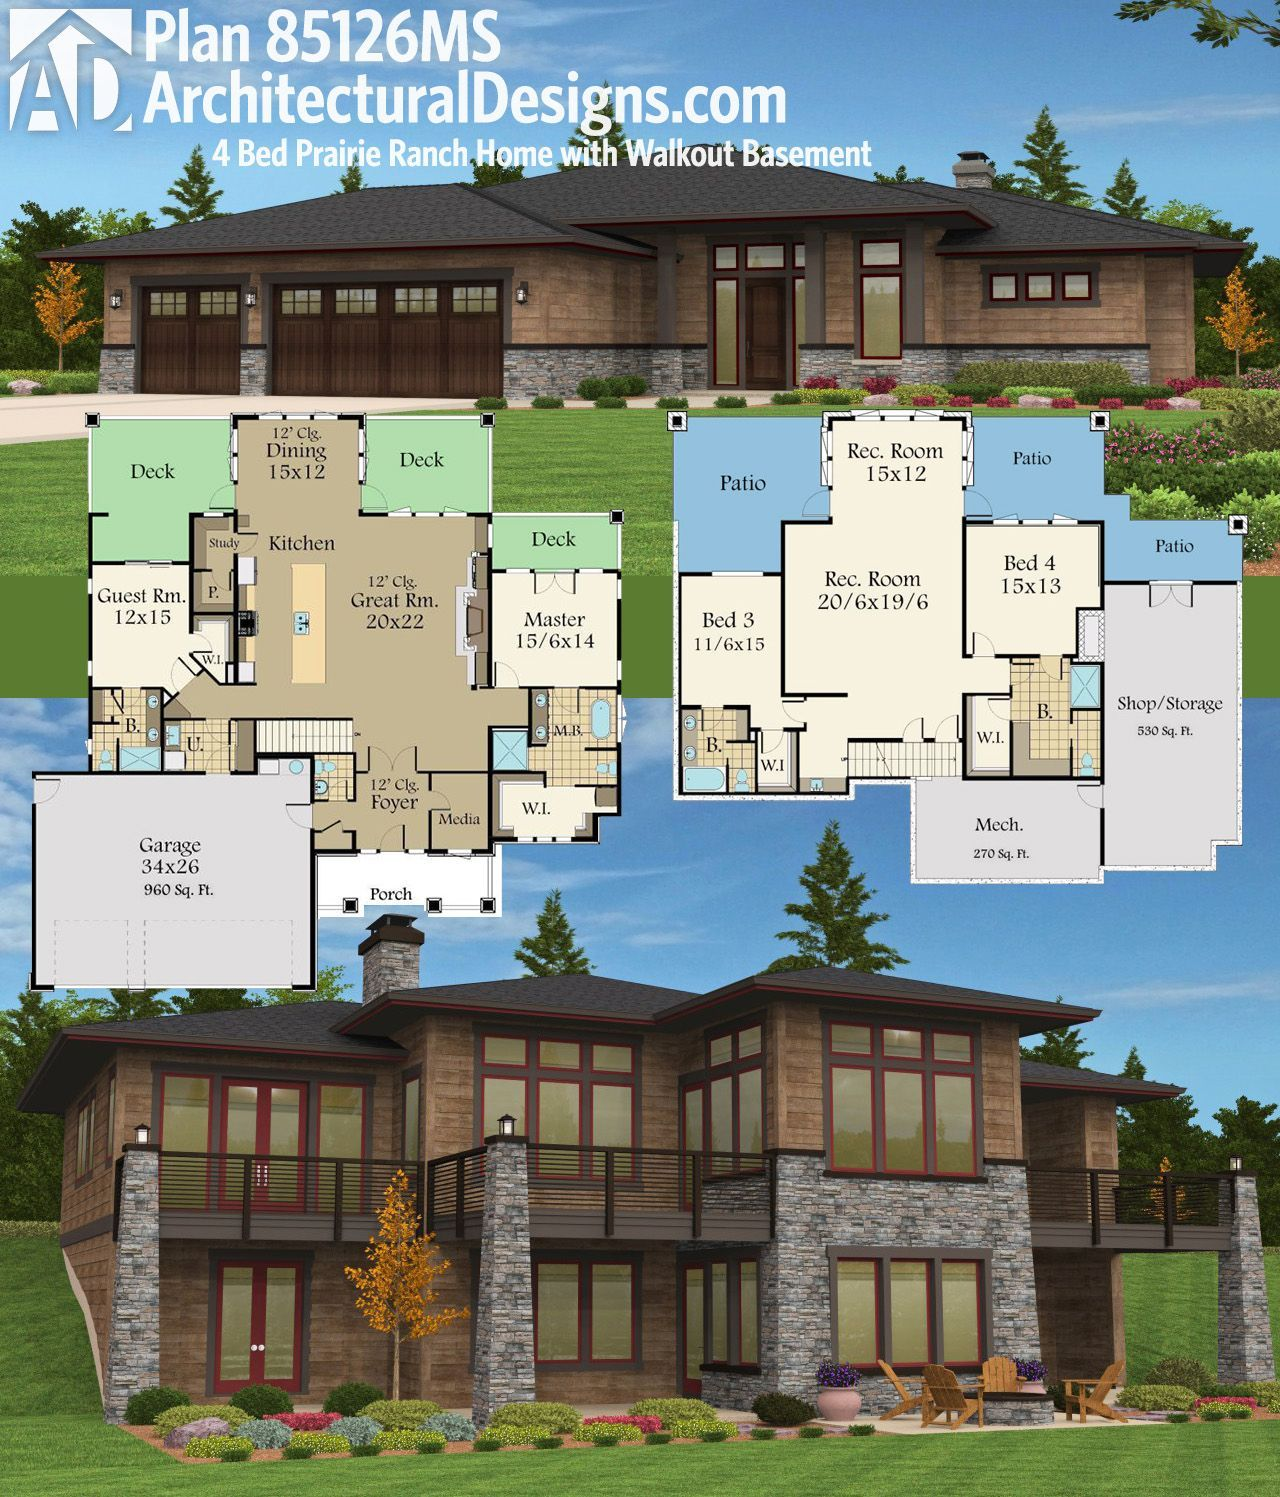 Architectural Designs Prairie Ranch Home Plan 85126ms Gives You 2 Beds On Main 2 Below And Over 4 00 Rancher House Plans Basement House Plans Lake House Plans